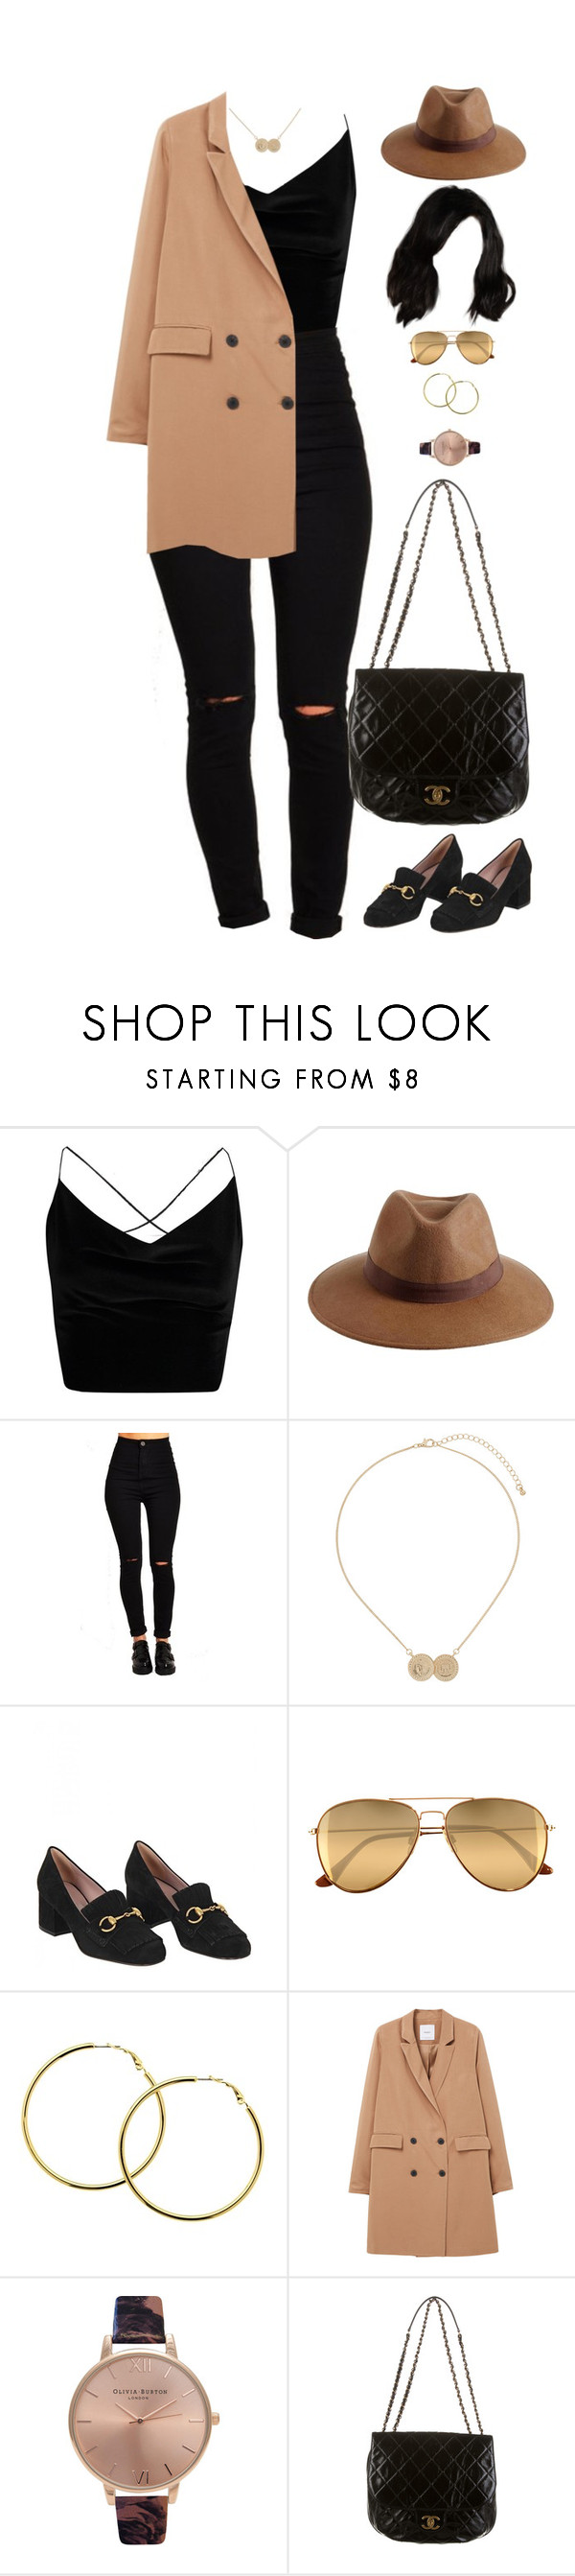 """""""Untitled #383"""" by hollygracem ❤ liked on Polyvore featuring Boohoo, Reiss, Miss Selfridge, Gucci, H&M, Melissa Odabash, MANGO, Topshop and Chanel"""